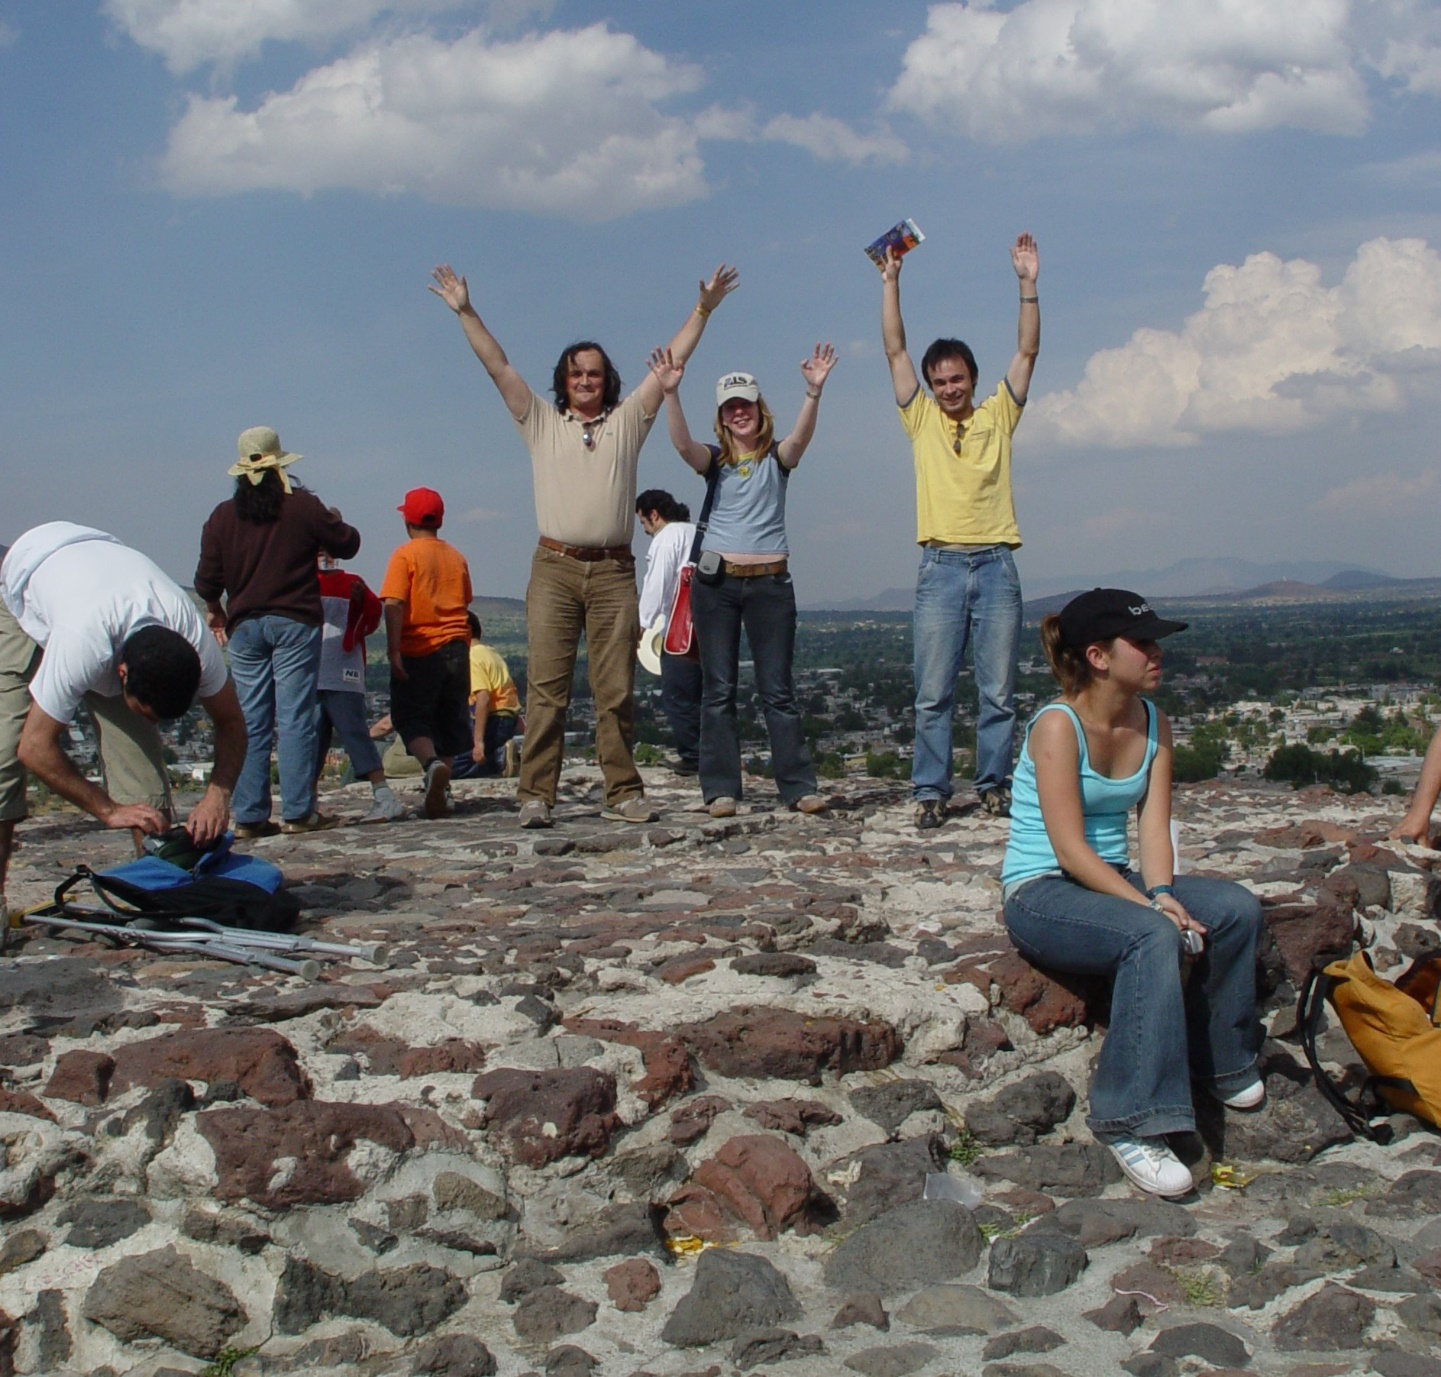 In this 2006 photo, Laskin (center, in beige shirt) joins international colleagues on a hike to climb the Teotihuacan pyramid in Mexico, during The Megacity Initiative: Local and Global Research Observations (MILAGRO) field campaign. Photo is courtesy of Laskin.